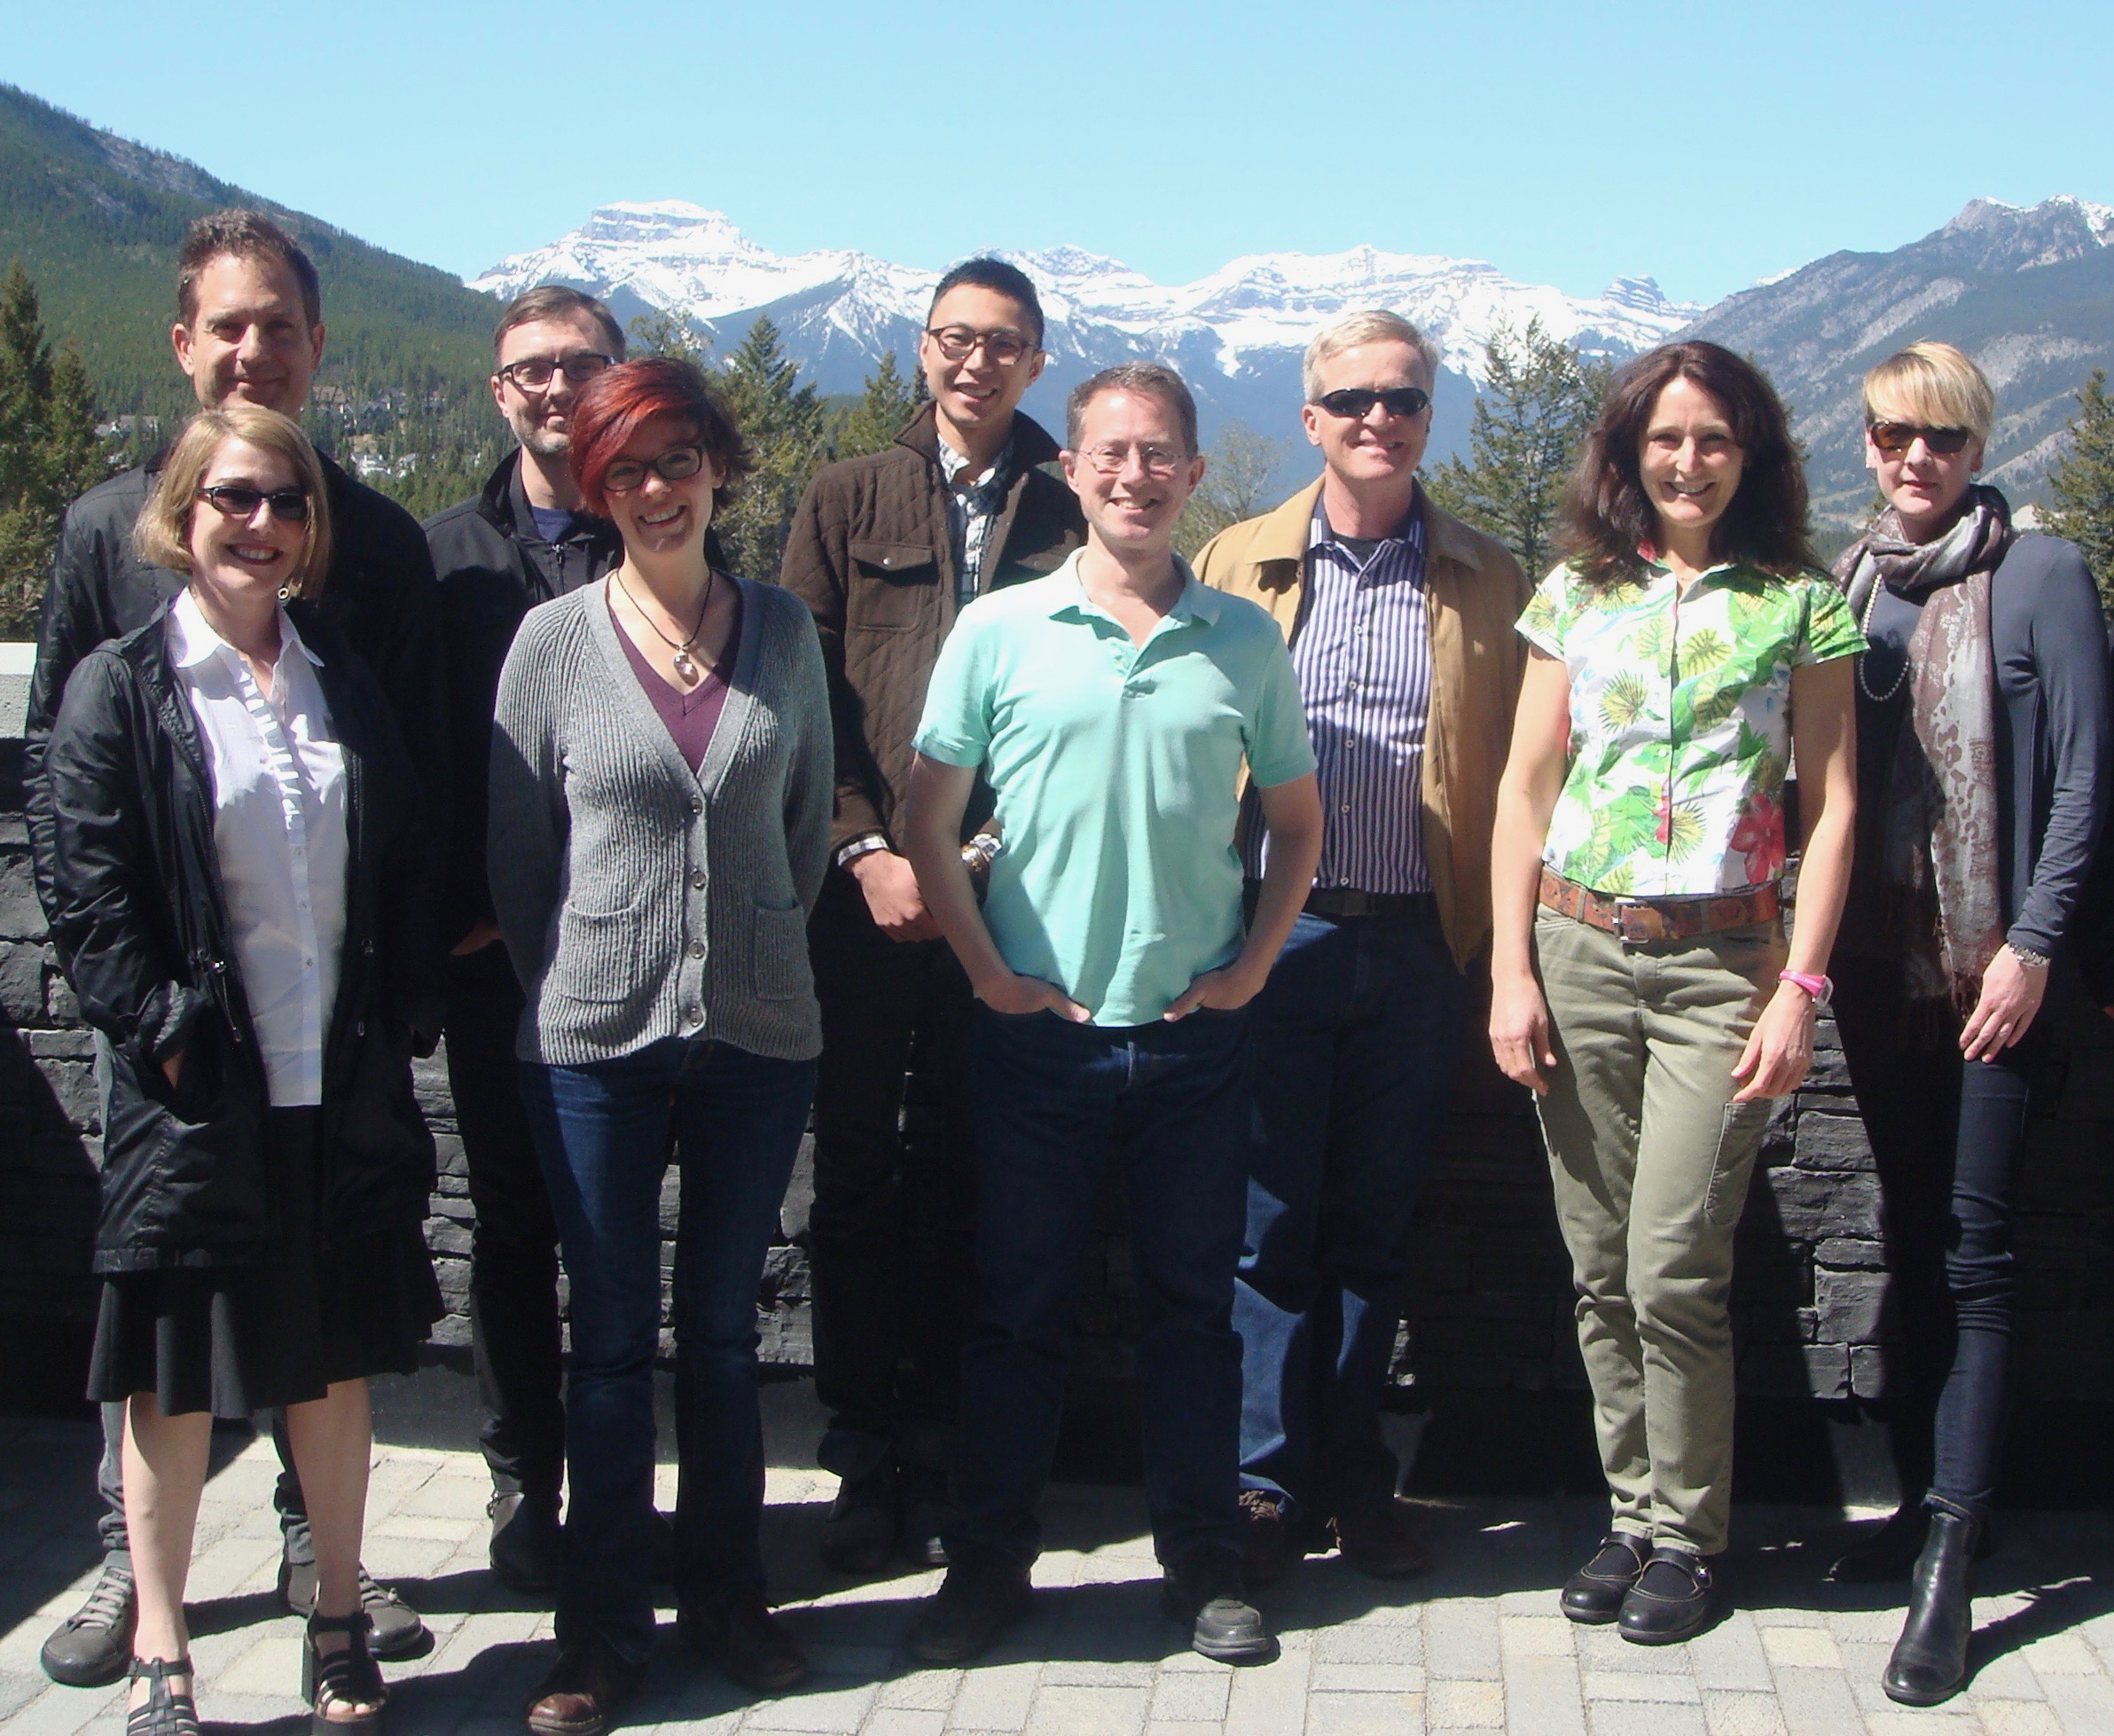 """Artifacts and Metaphysical Explanation"" Workshop, Banff Centre, 17-20 May 2015  BACK ROW (left to right): Ori Simchen (UBC), Mike Raven (UVic), Ka-Ho Lam (UofA, PhD student), Jack Zupko (UofA), Kathrin Koslicki (UofA), Margaret Cameron (Melbourne), FRONT ROW (left to right): Jessica Wilson (UofT), Carrie Jenkins (UBC), Phil Corkum (UofA)"